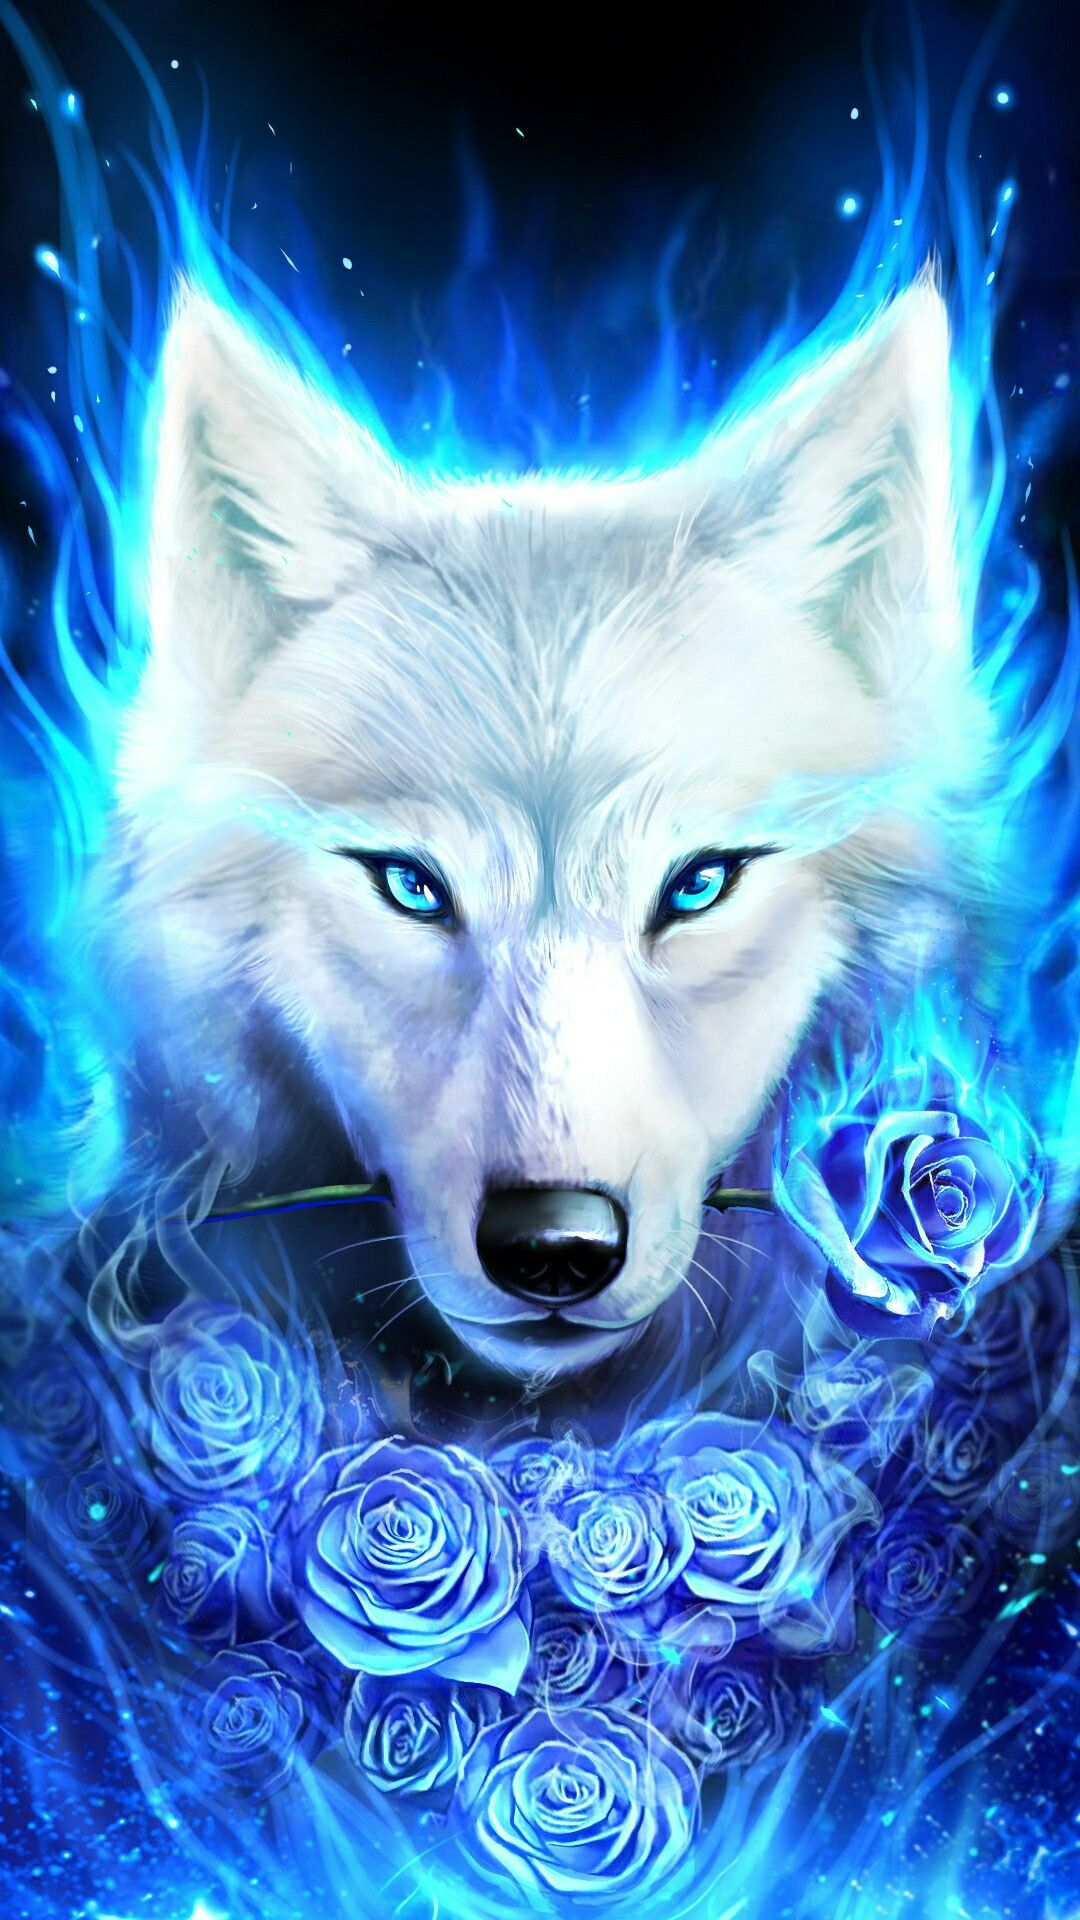 Pin By Mary Delabrue On Wolves Wolf Wallpaper Anime Wolf